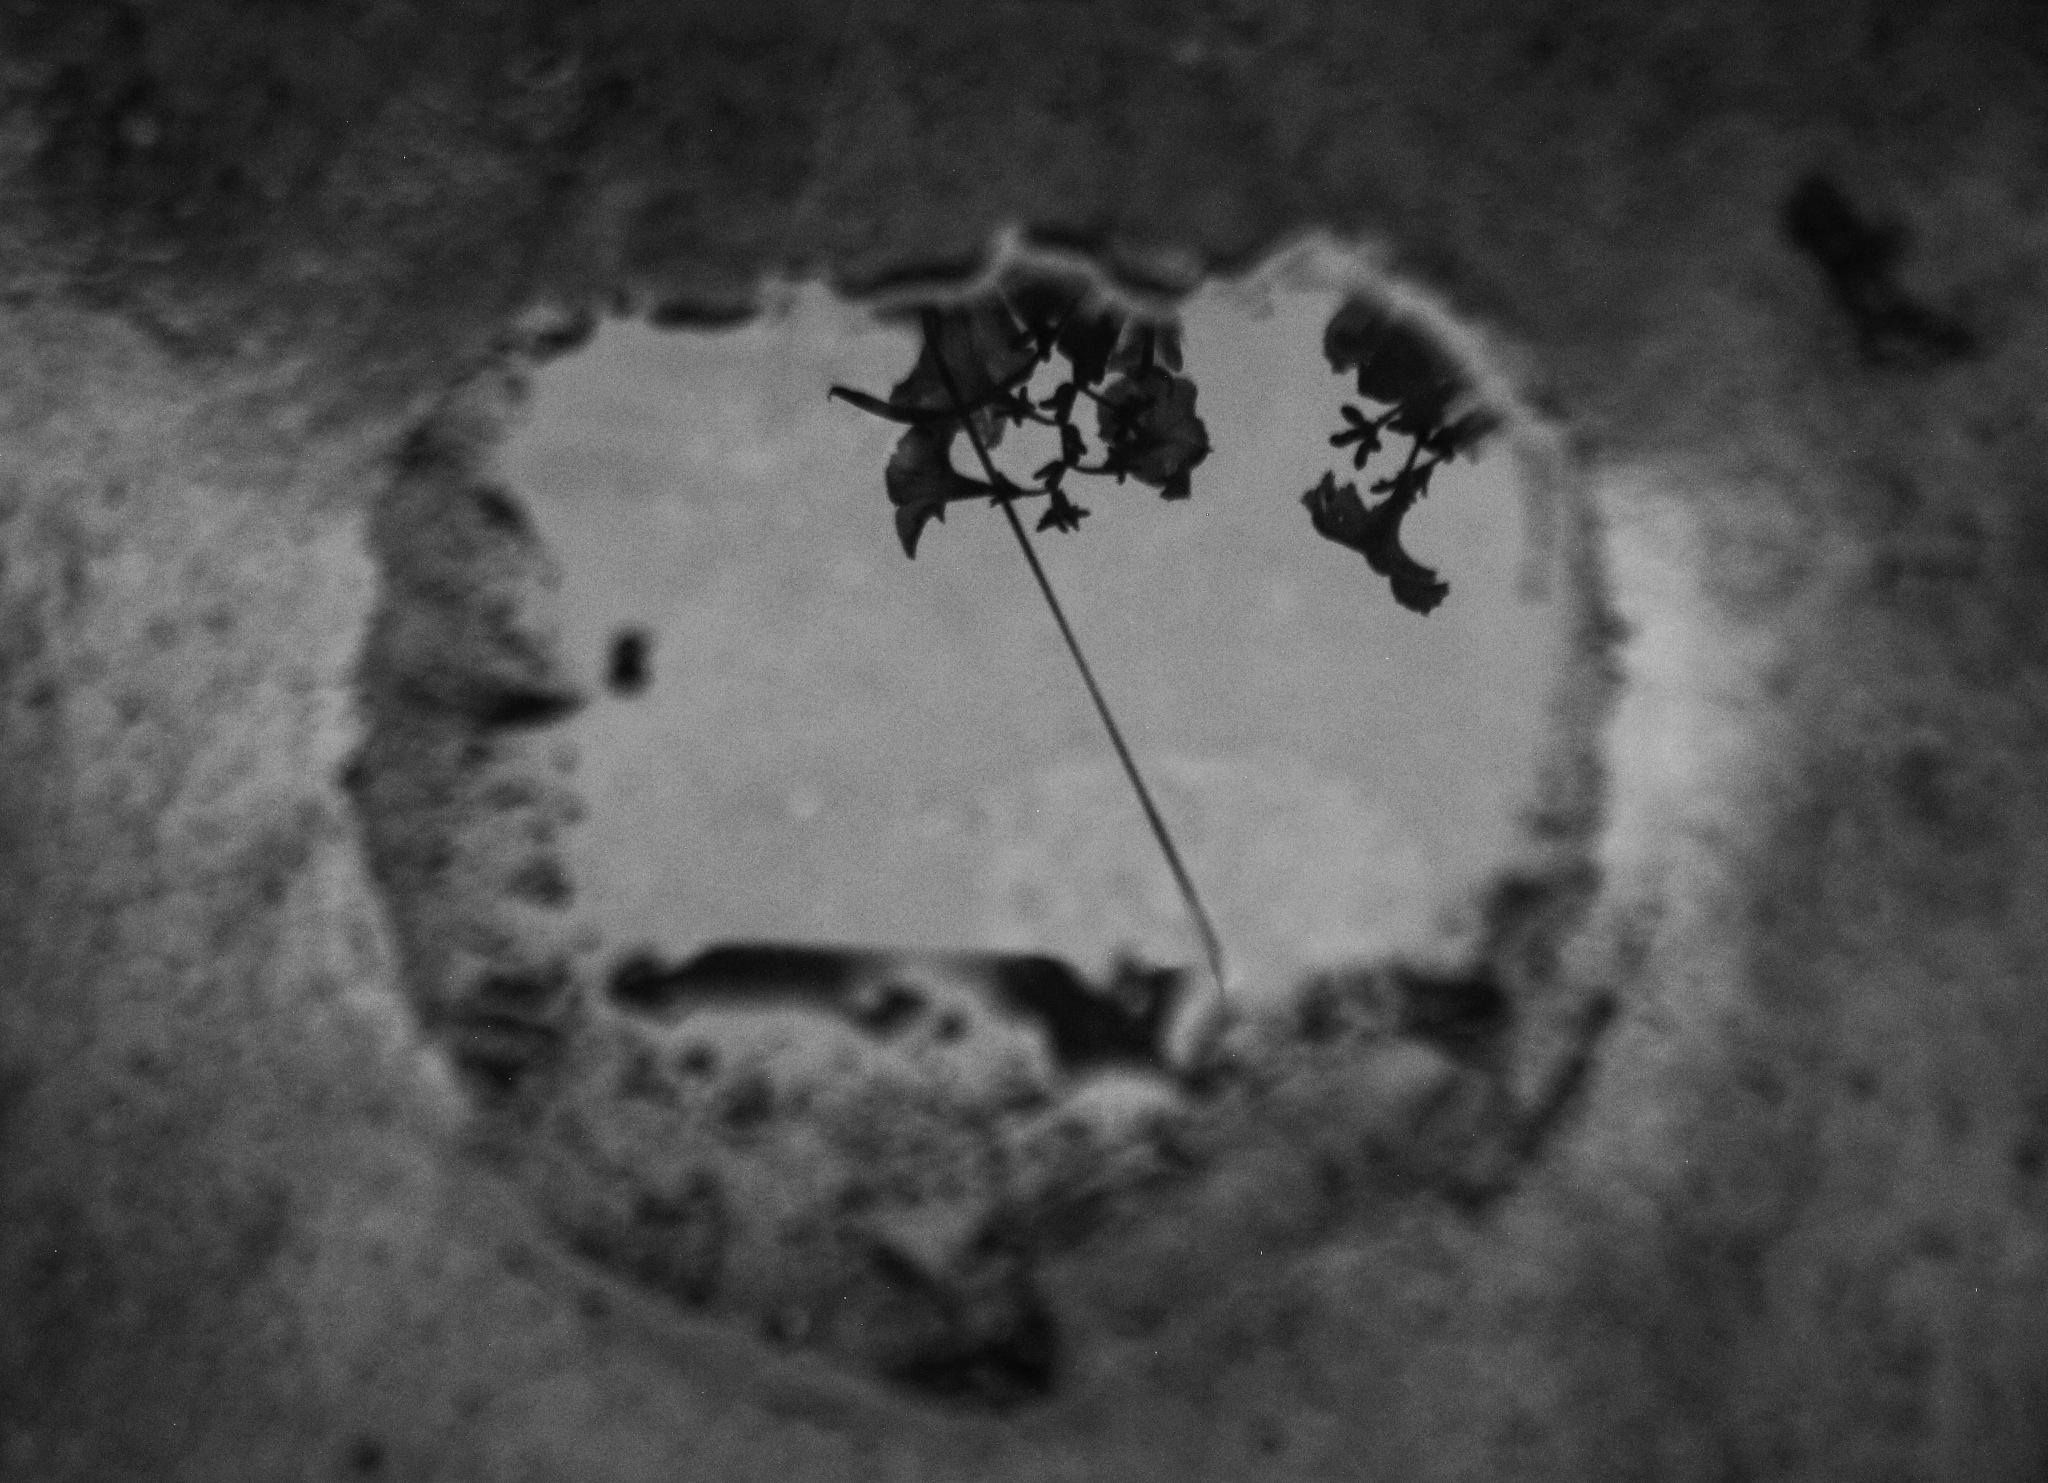 puddle by Anne Marie Alves-Curcic